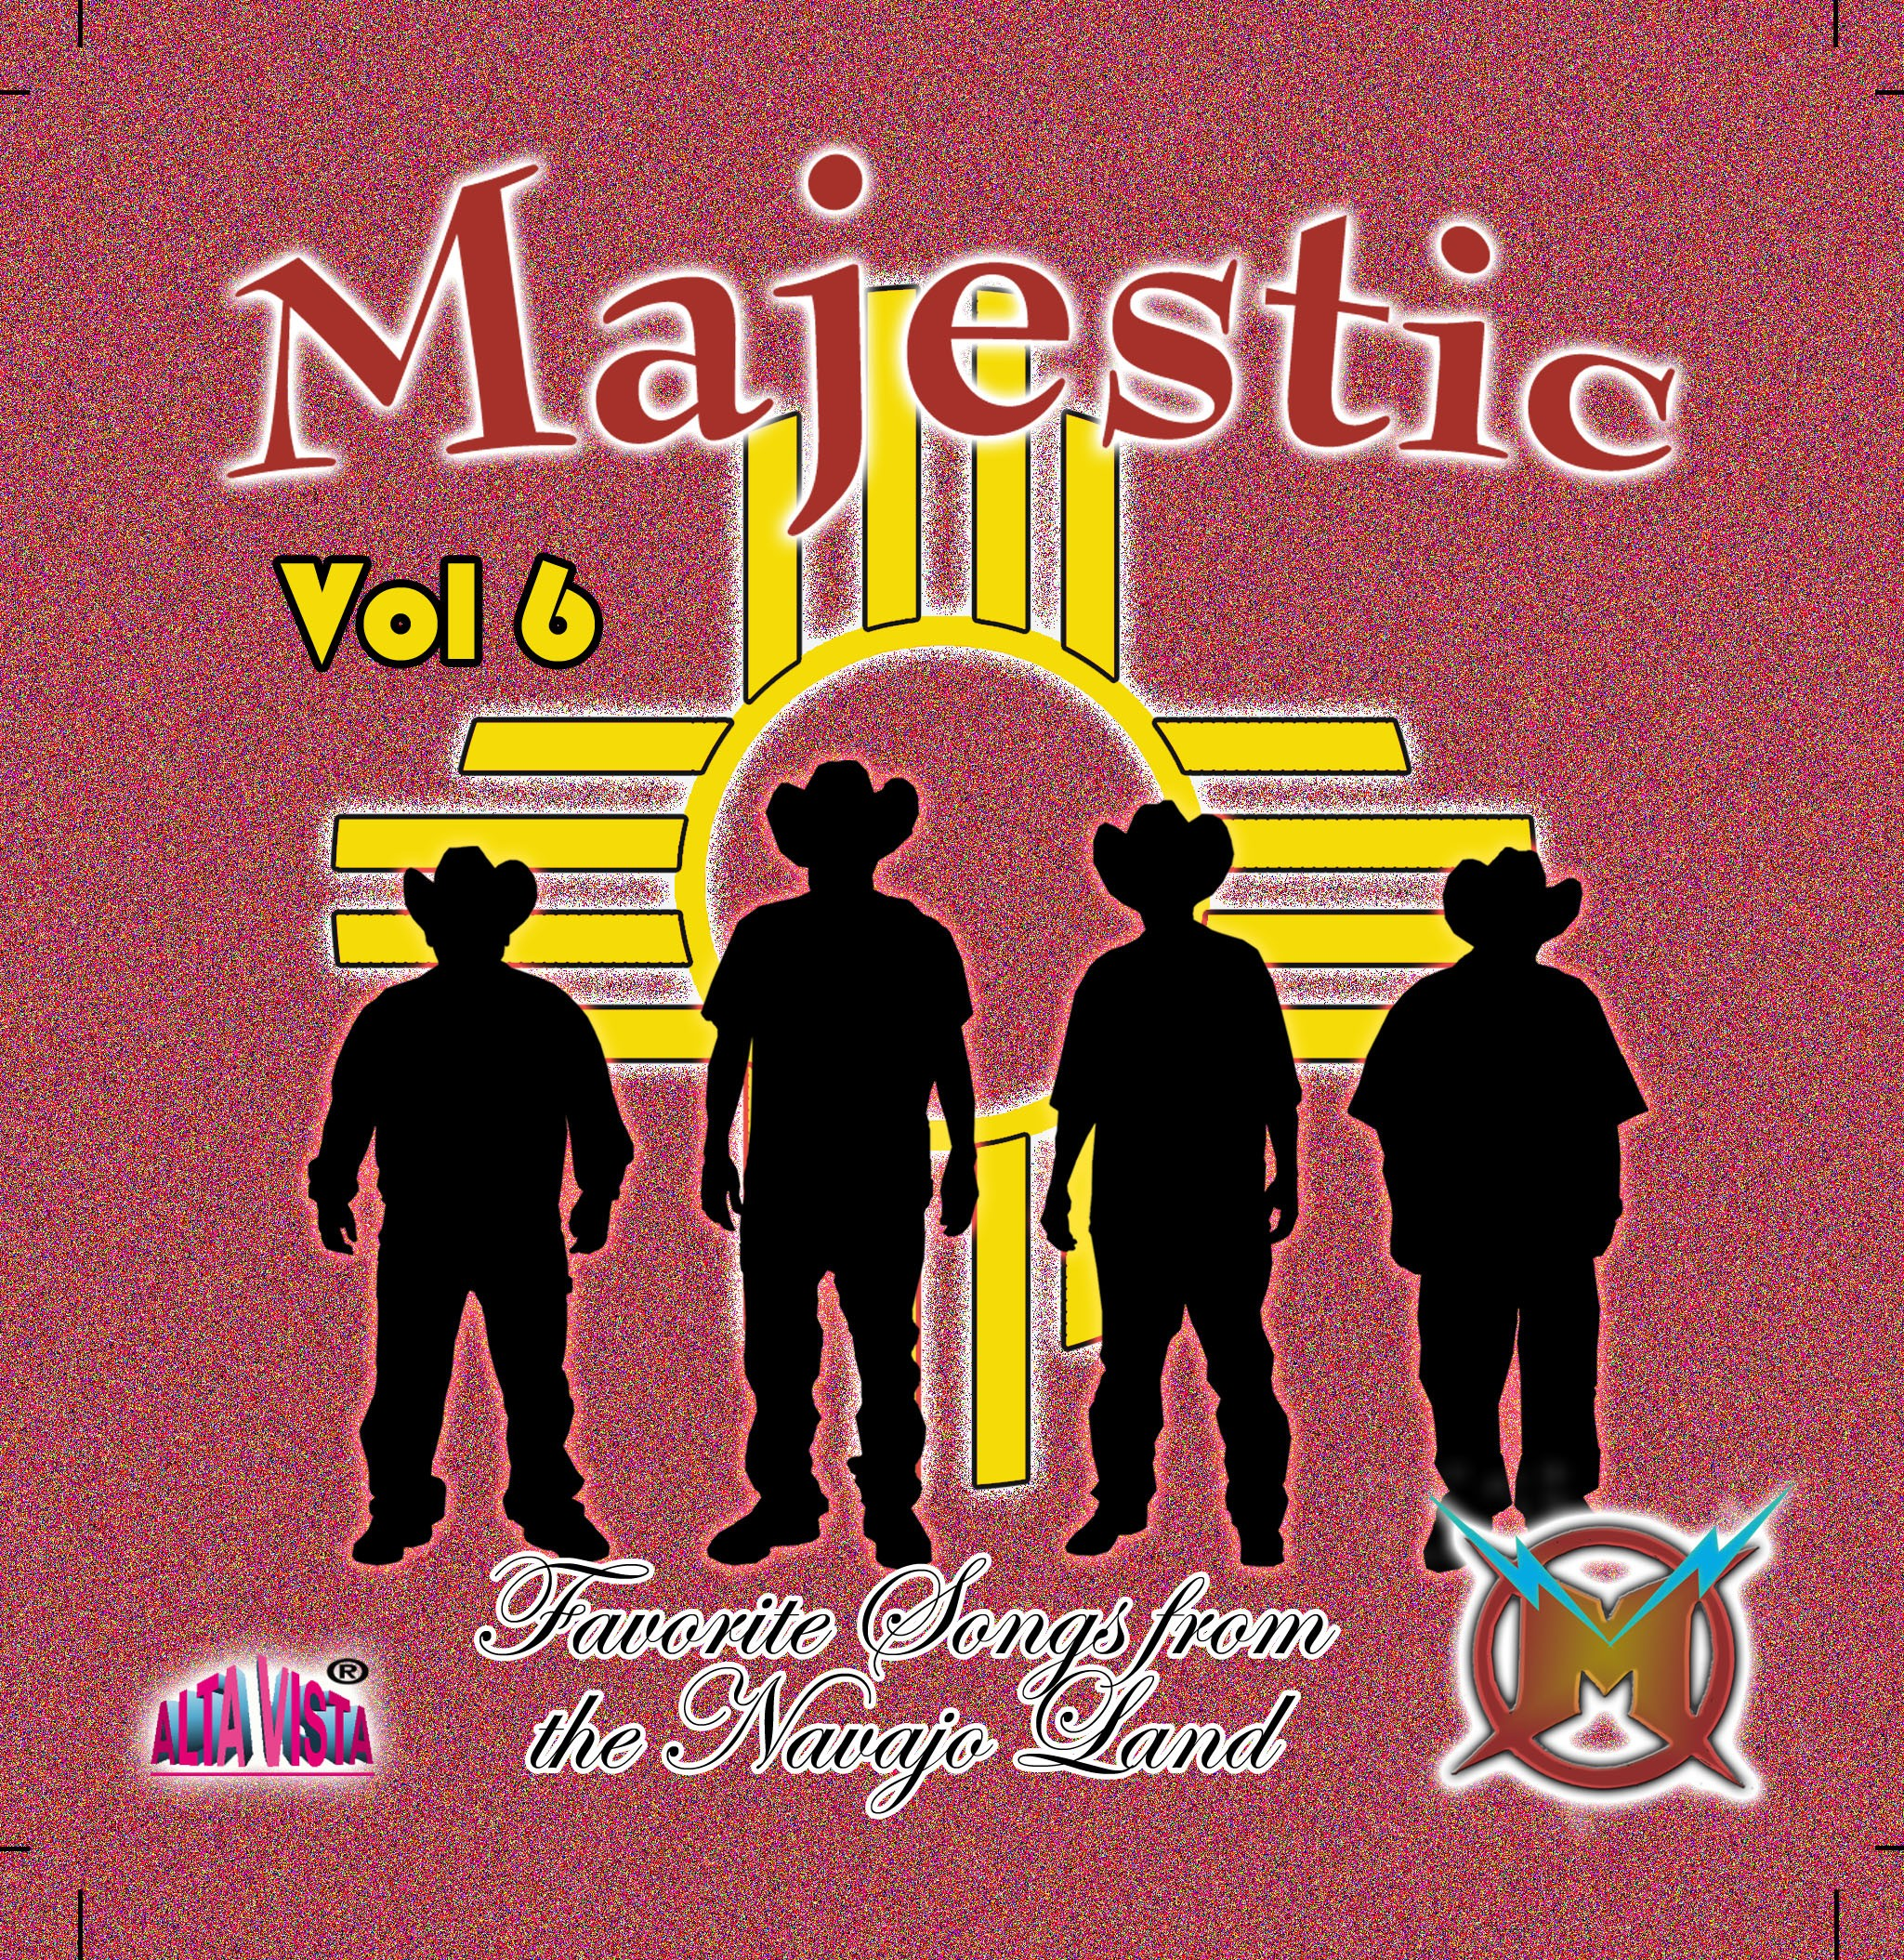 Majestic vol 6 Downloadable songs